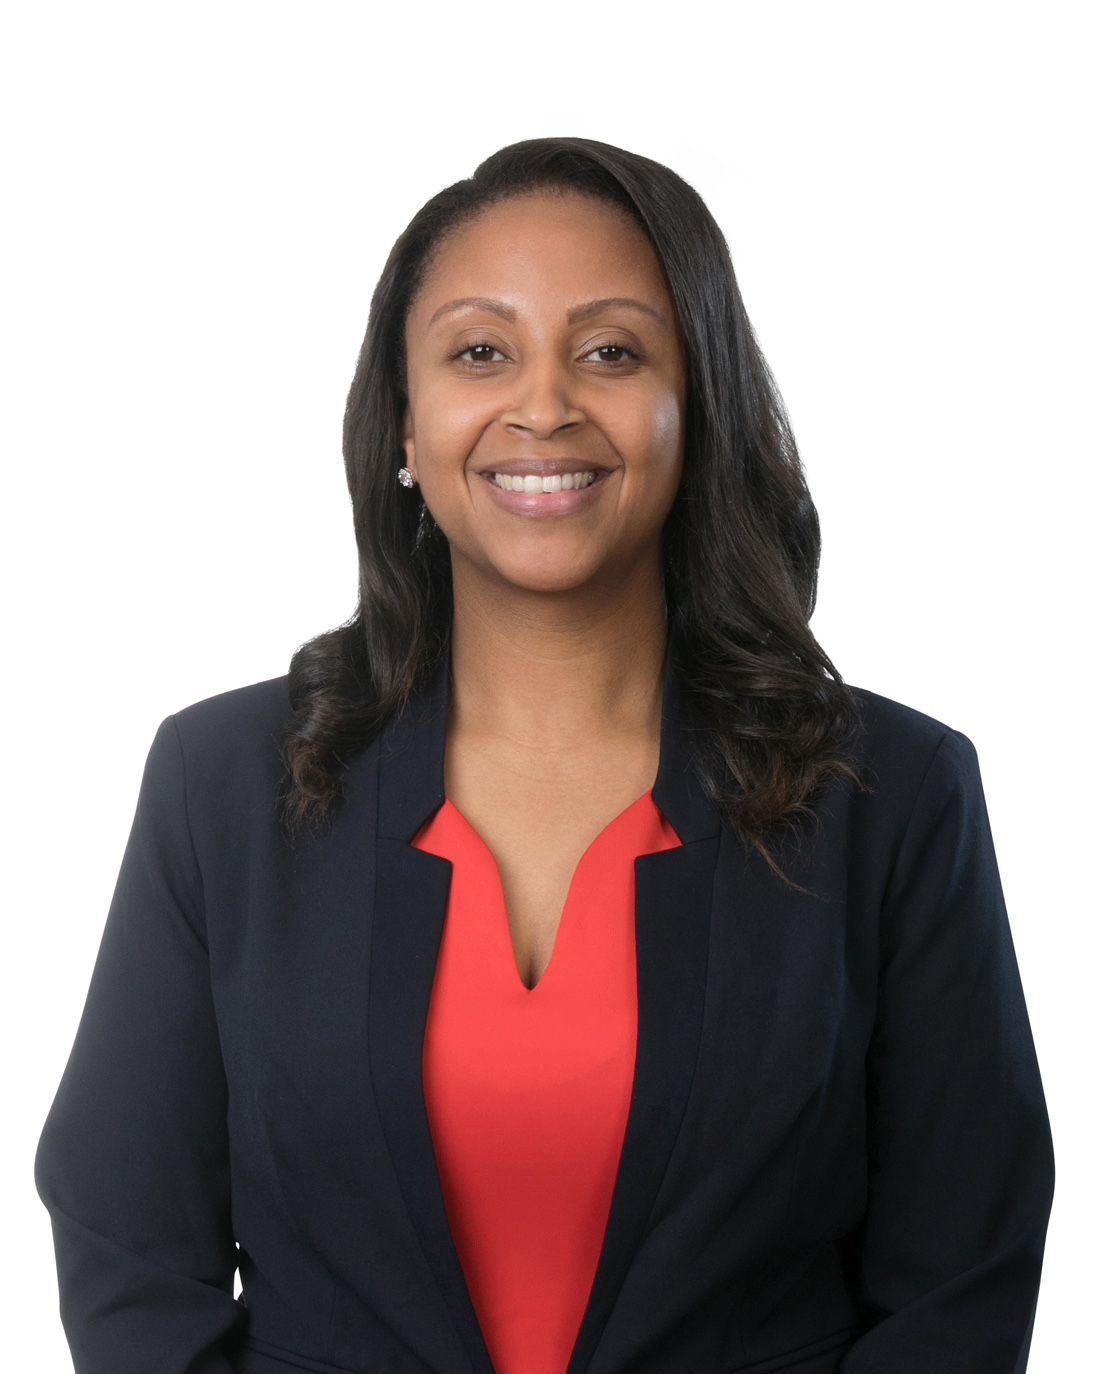 Donique Dones, Project Manager, Moskowitz LLP